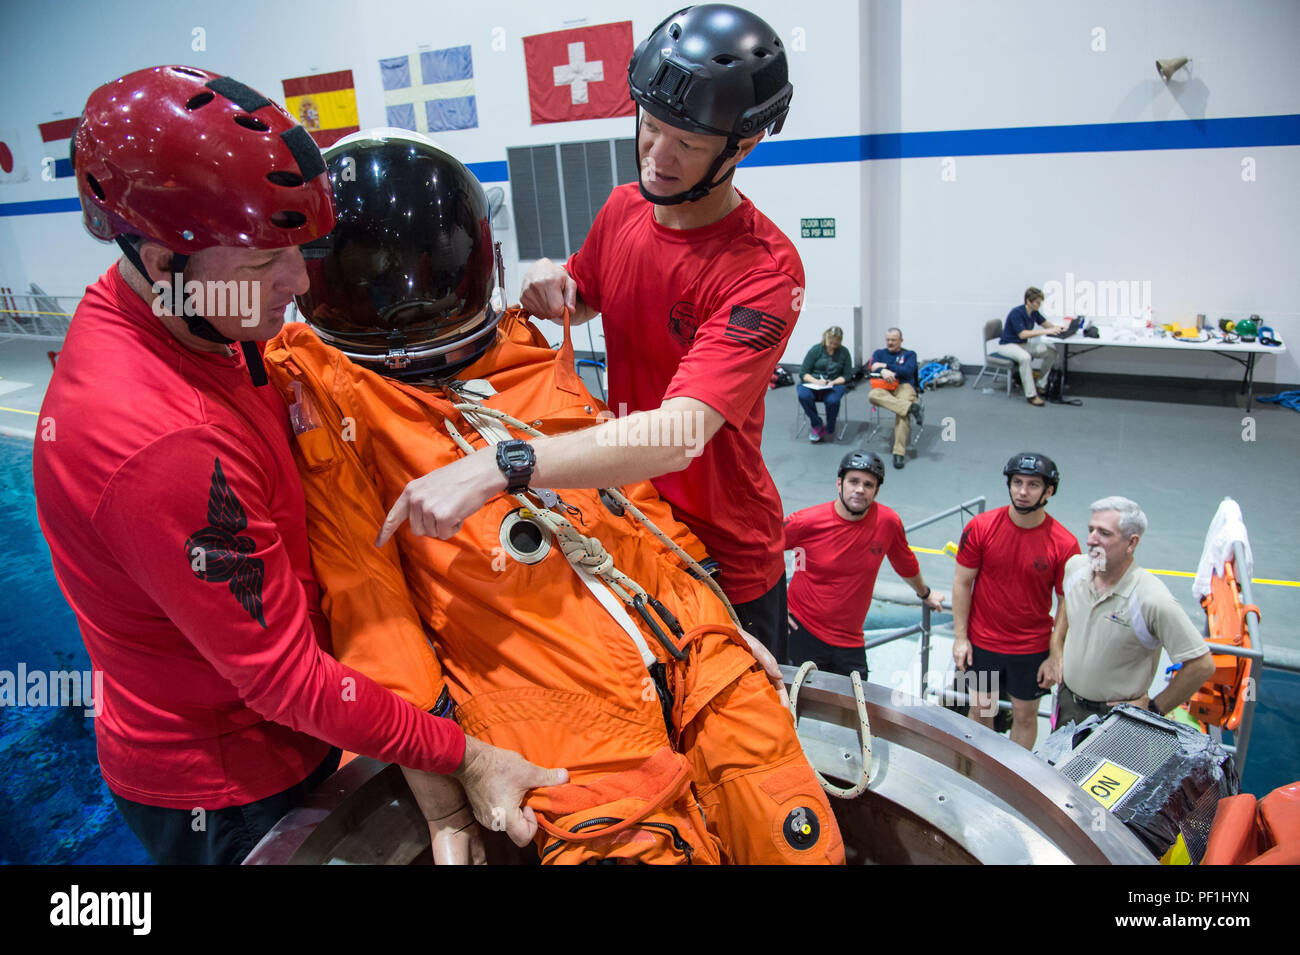 Astronaut At Work Stock Photos & Astronaut At Work Stock Images - Alamy